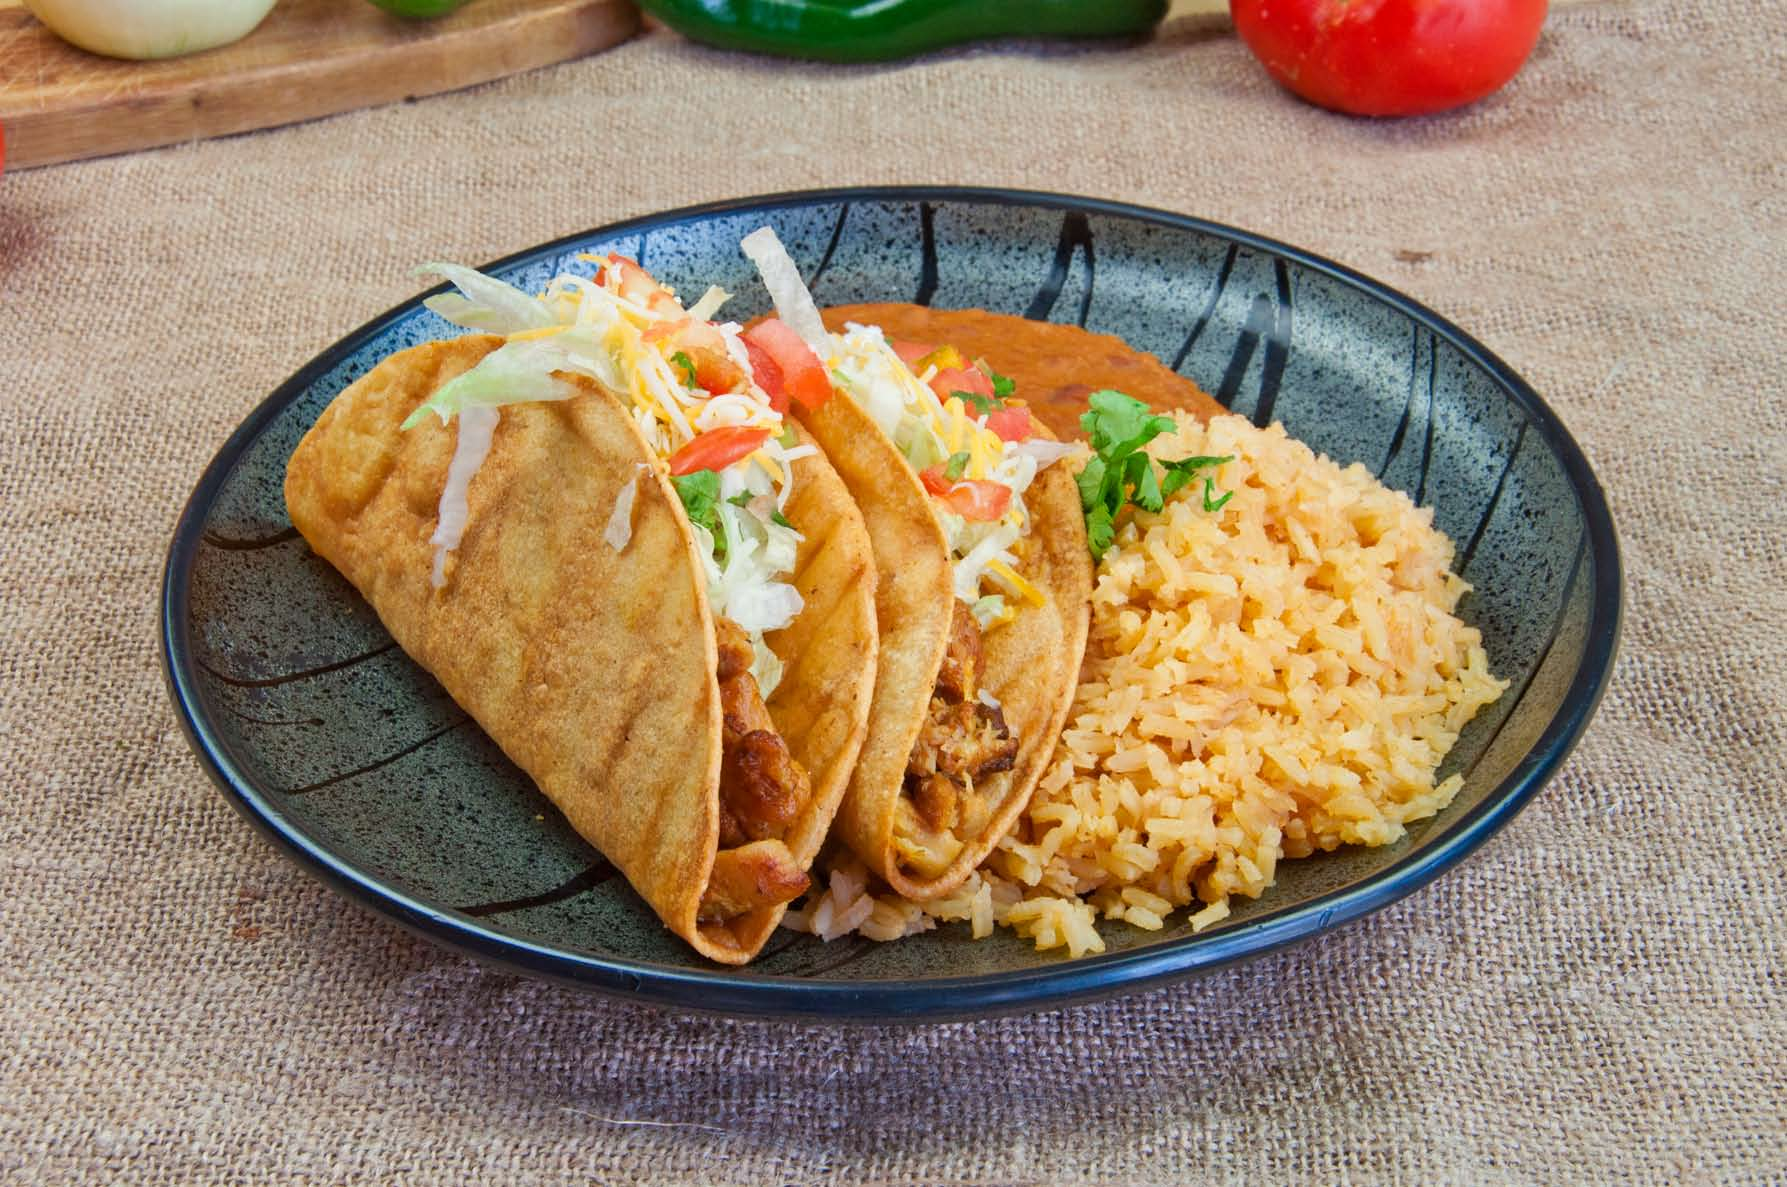 Two Hardshell Tacos with Side of Yellow Rice